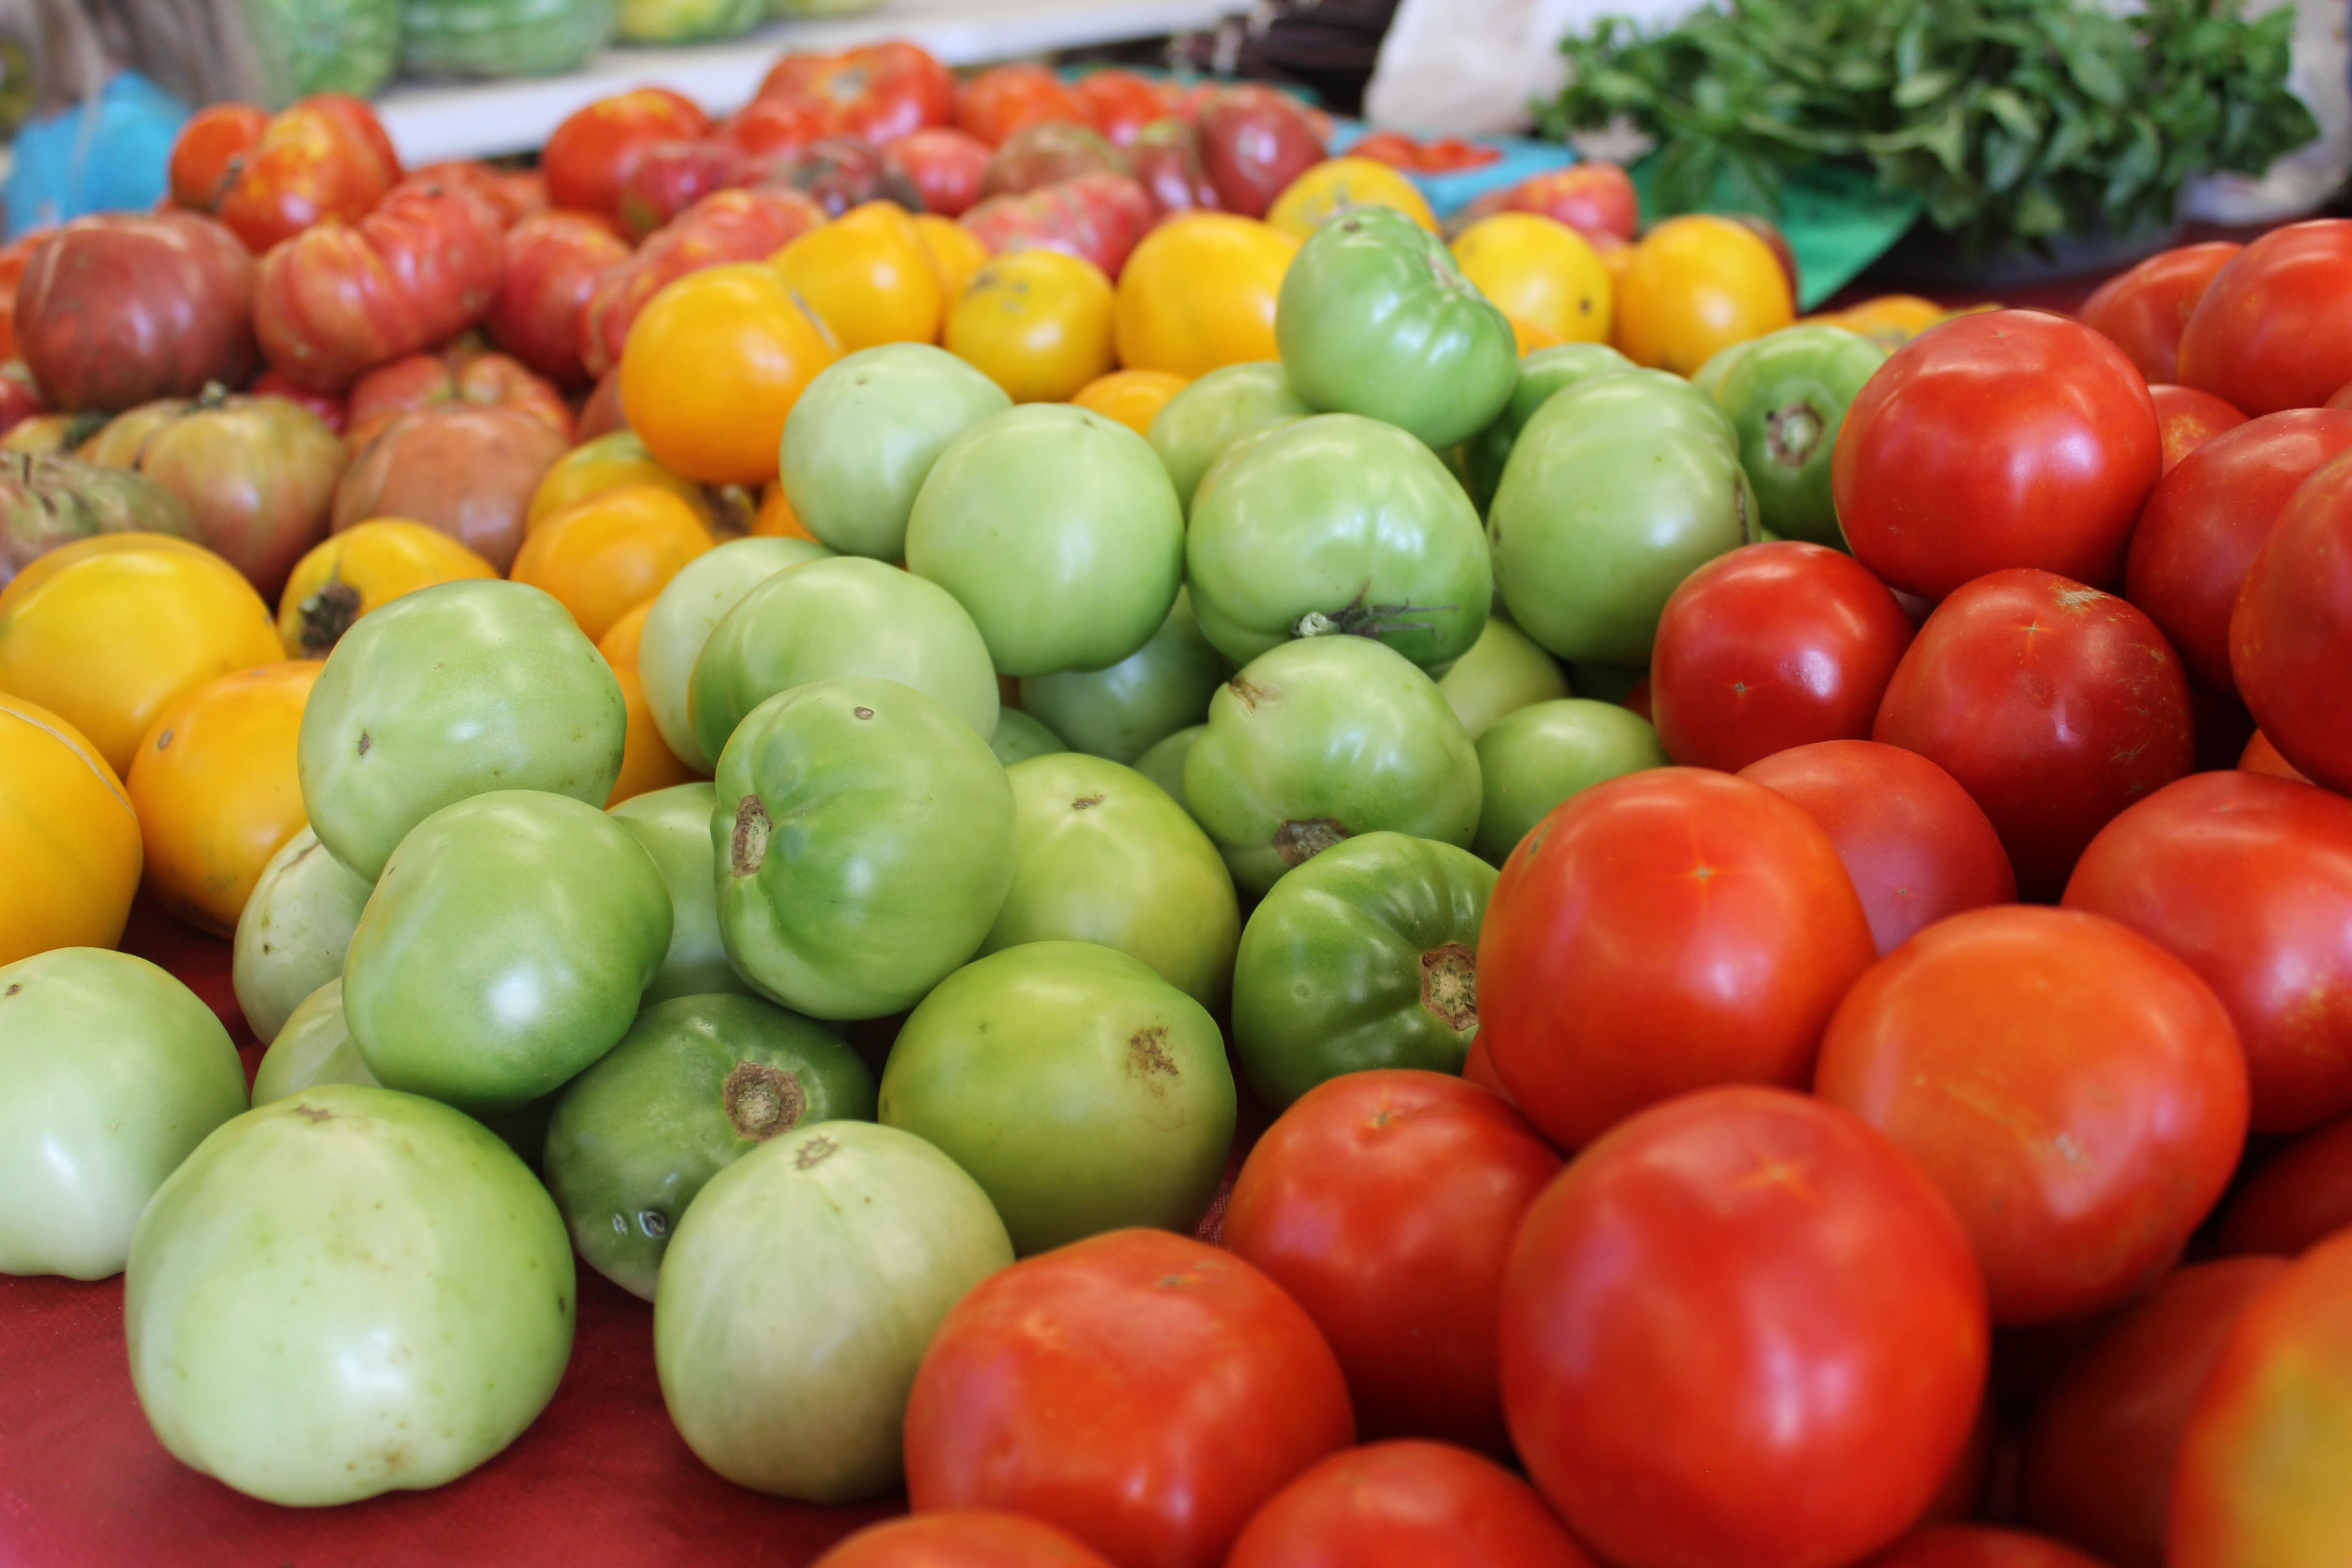 Farmers Markets Tomatoes